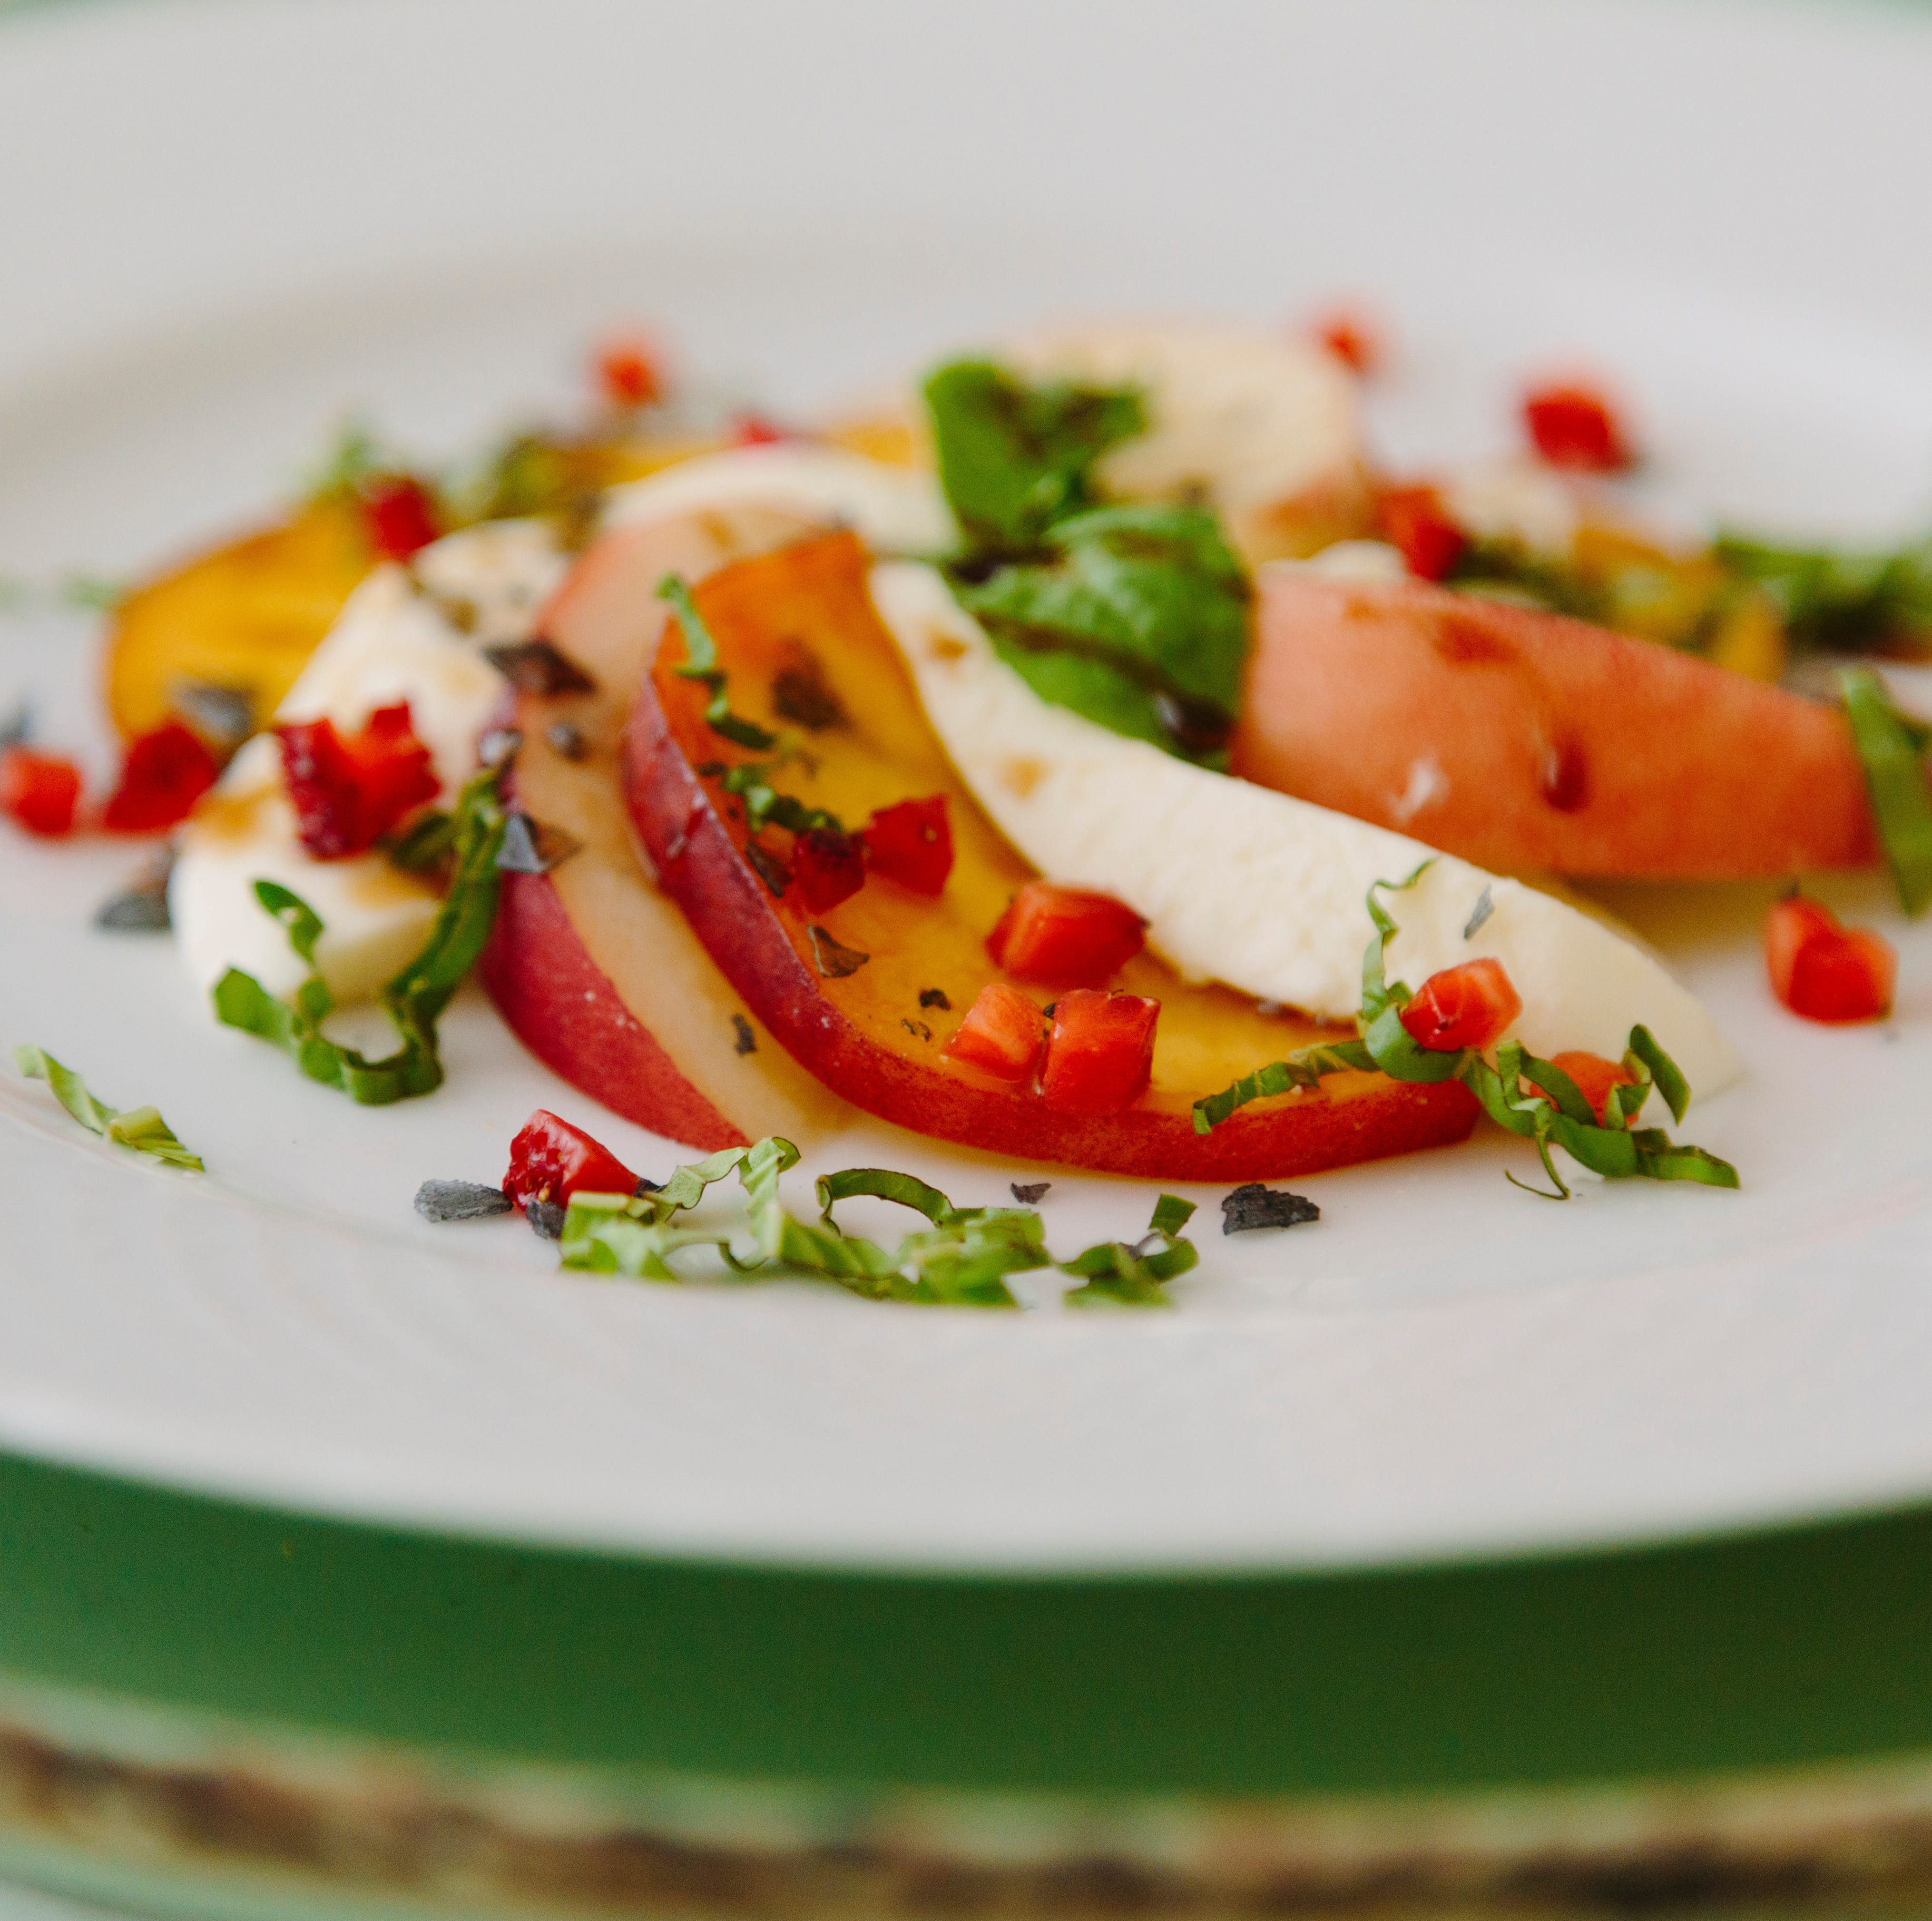 Peach caprese salad from Chef's Market.